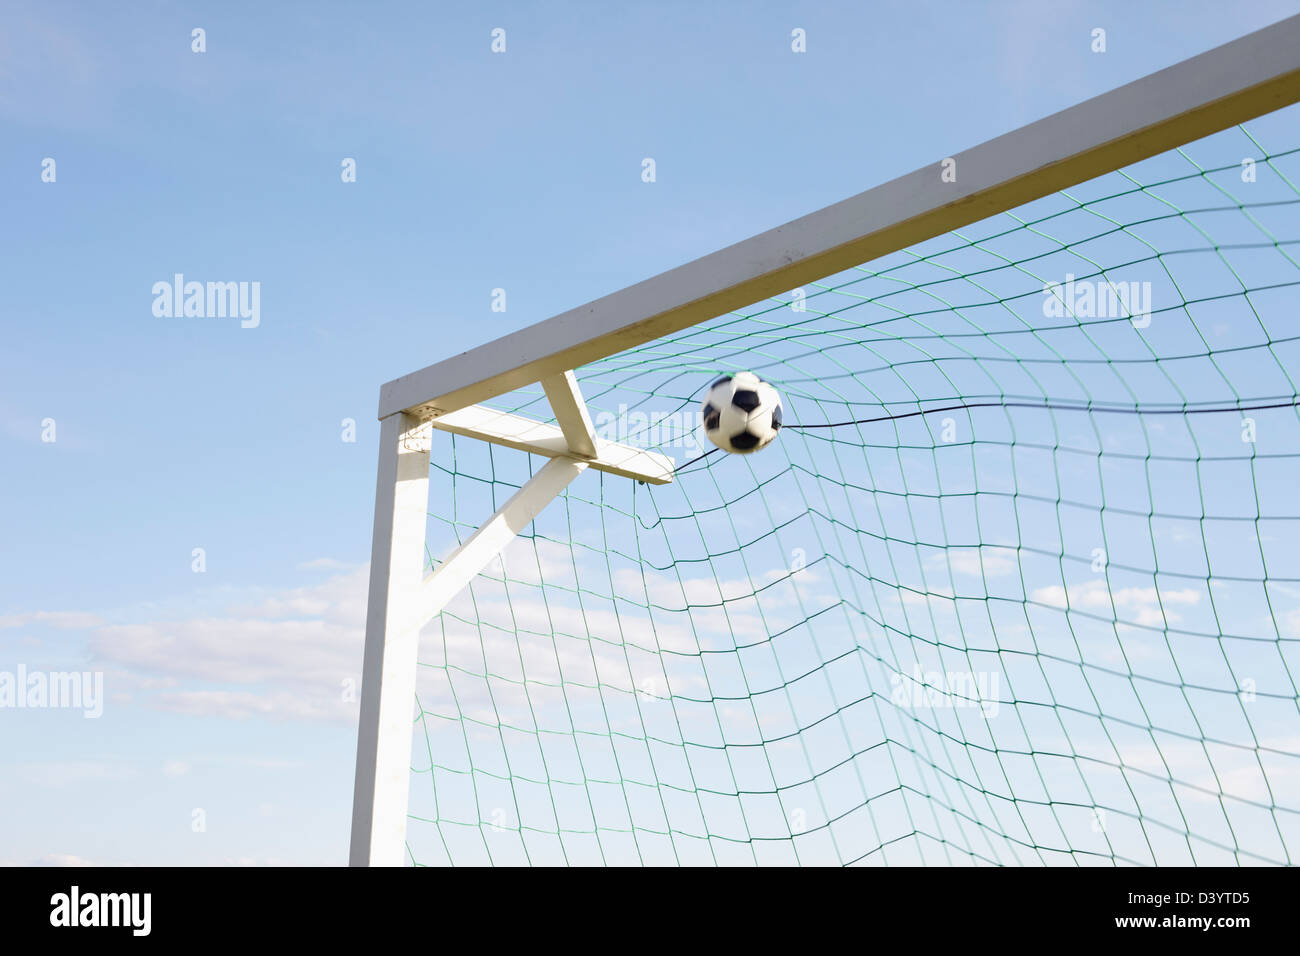 Soccer Net And Soccer Ball Lysekil Vastra Gotaland County Stock Photo Alamy